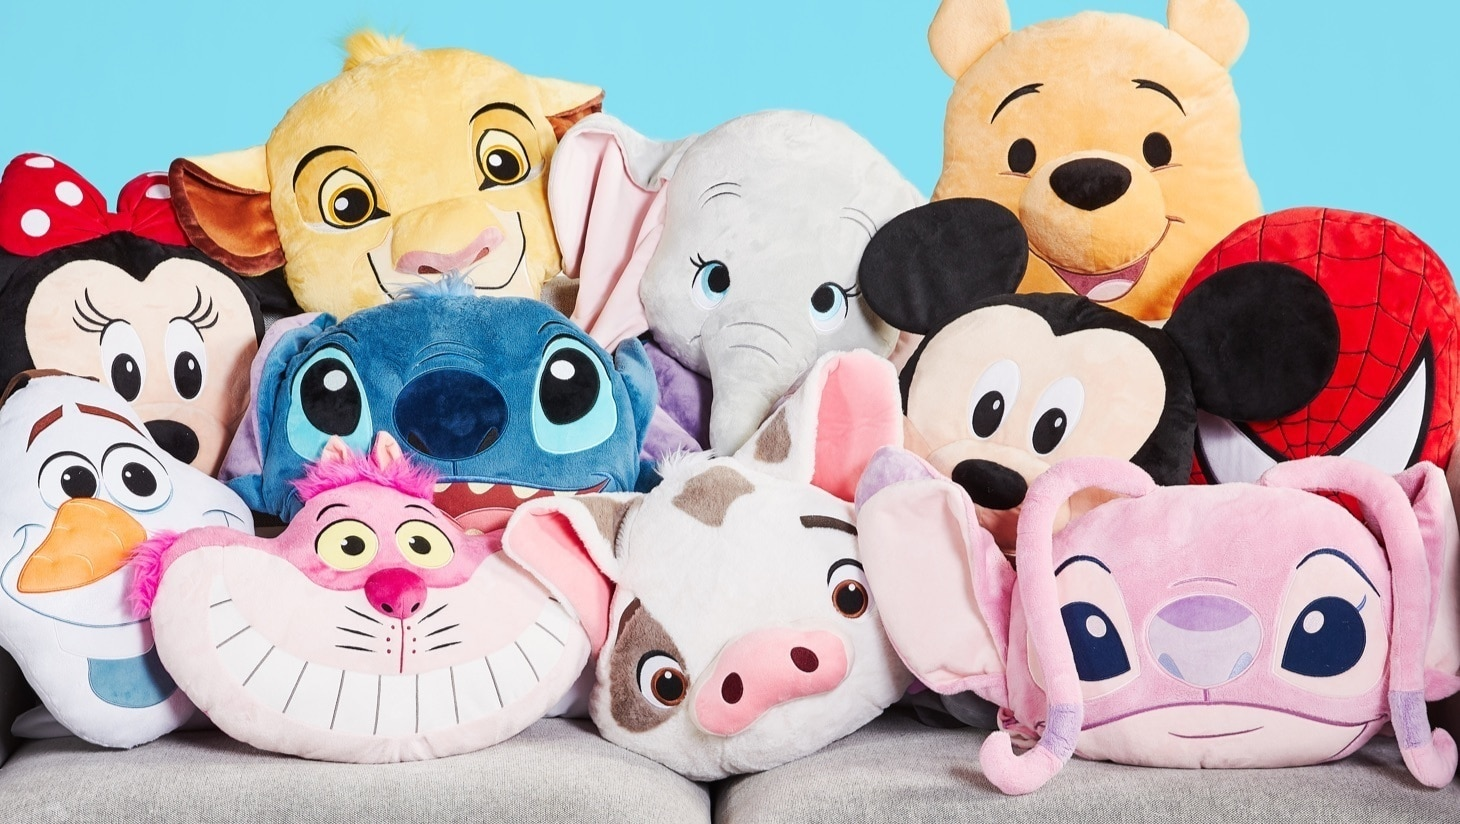 Cushions inspired by Disney characters